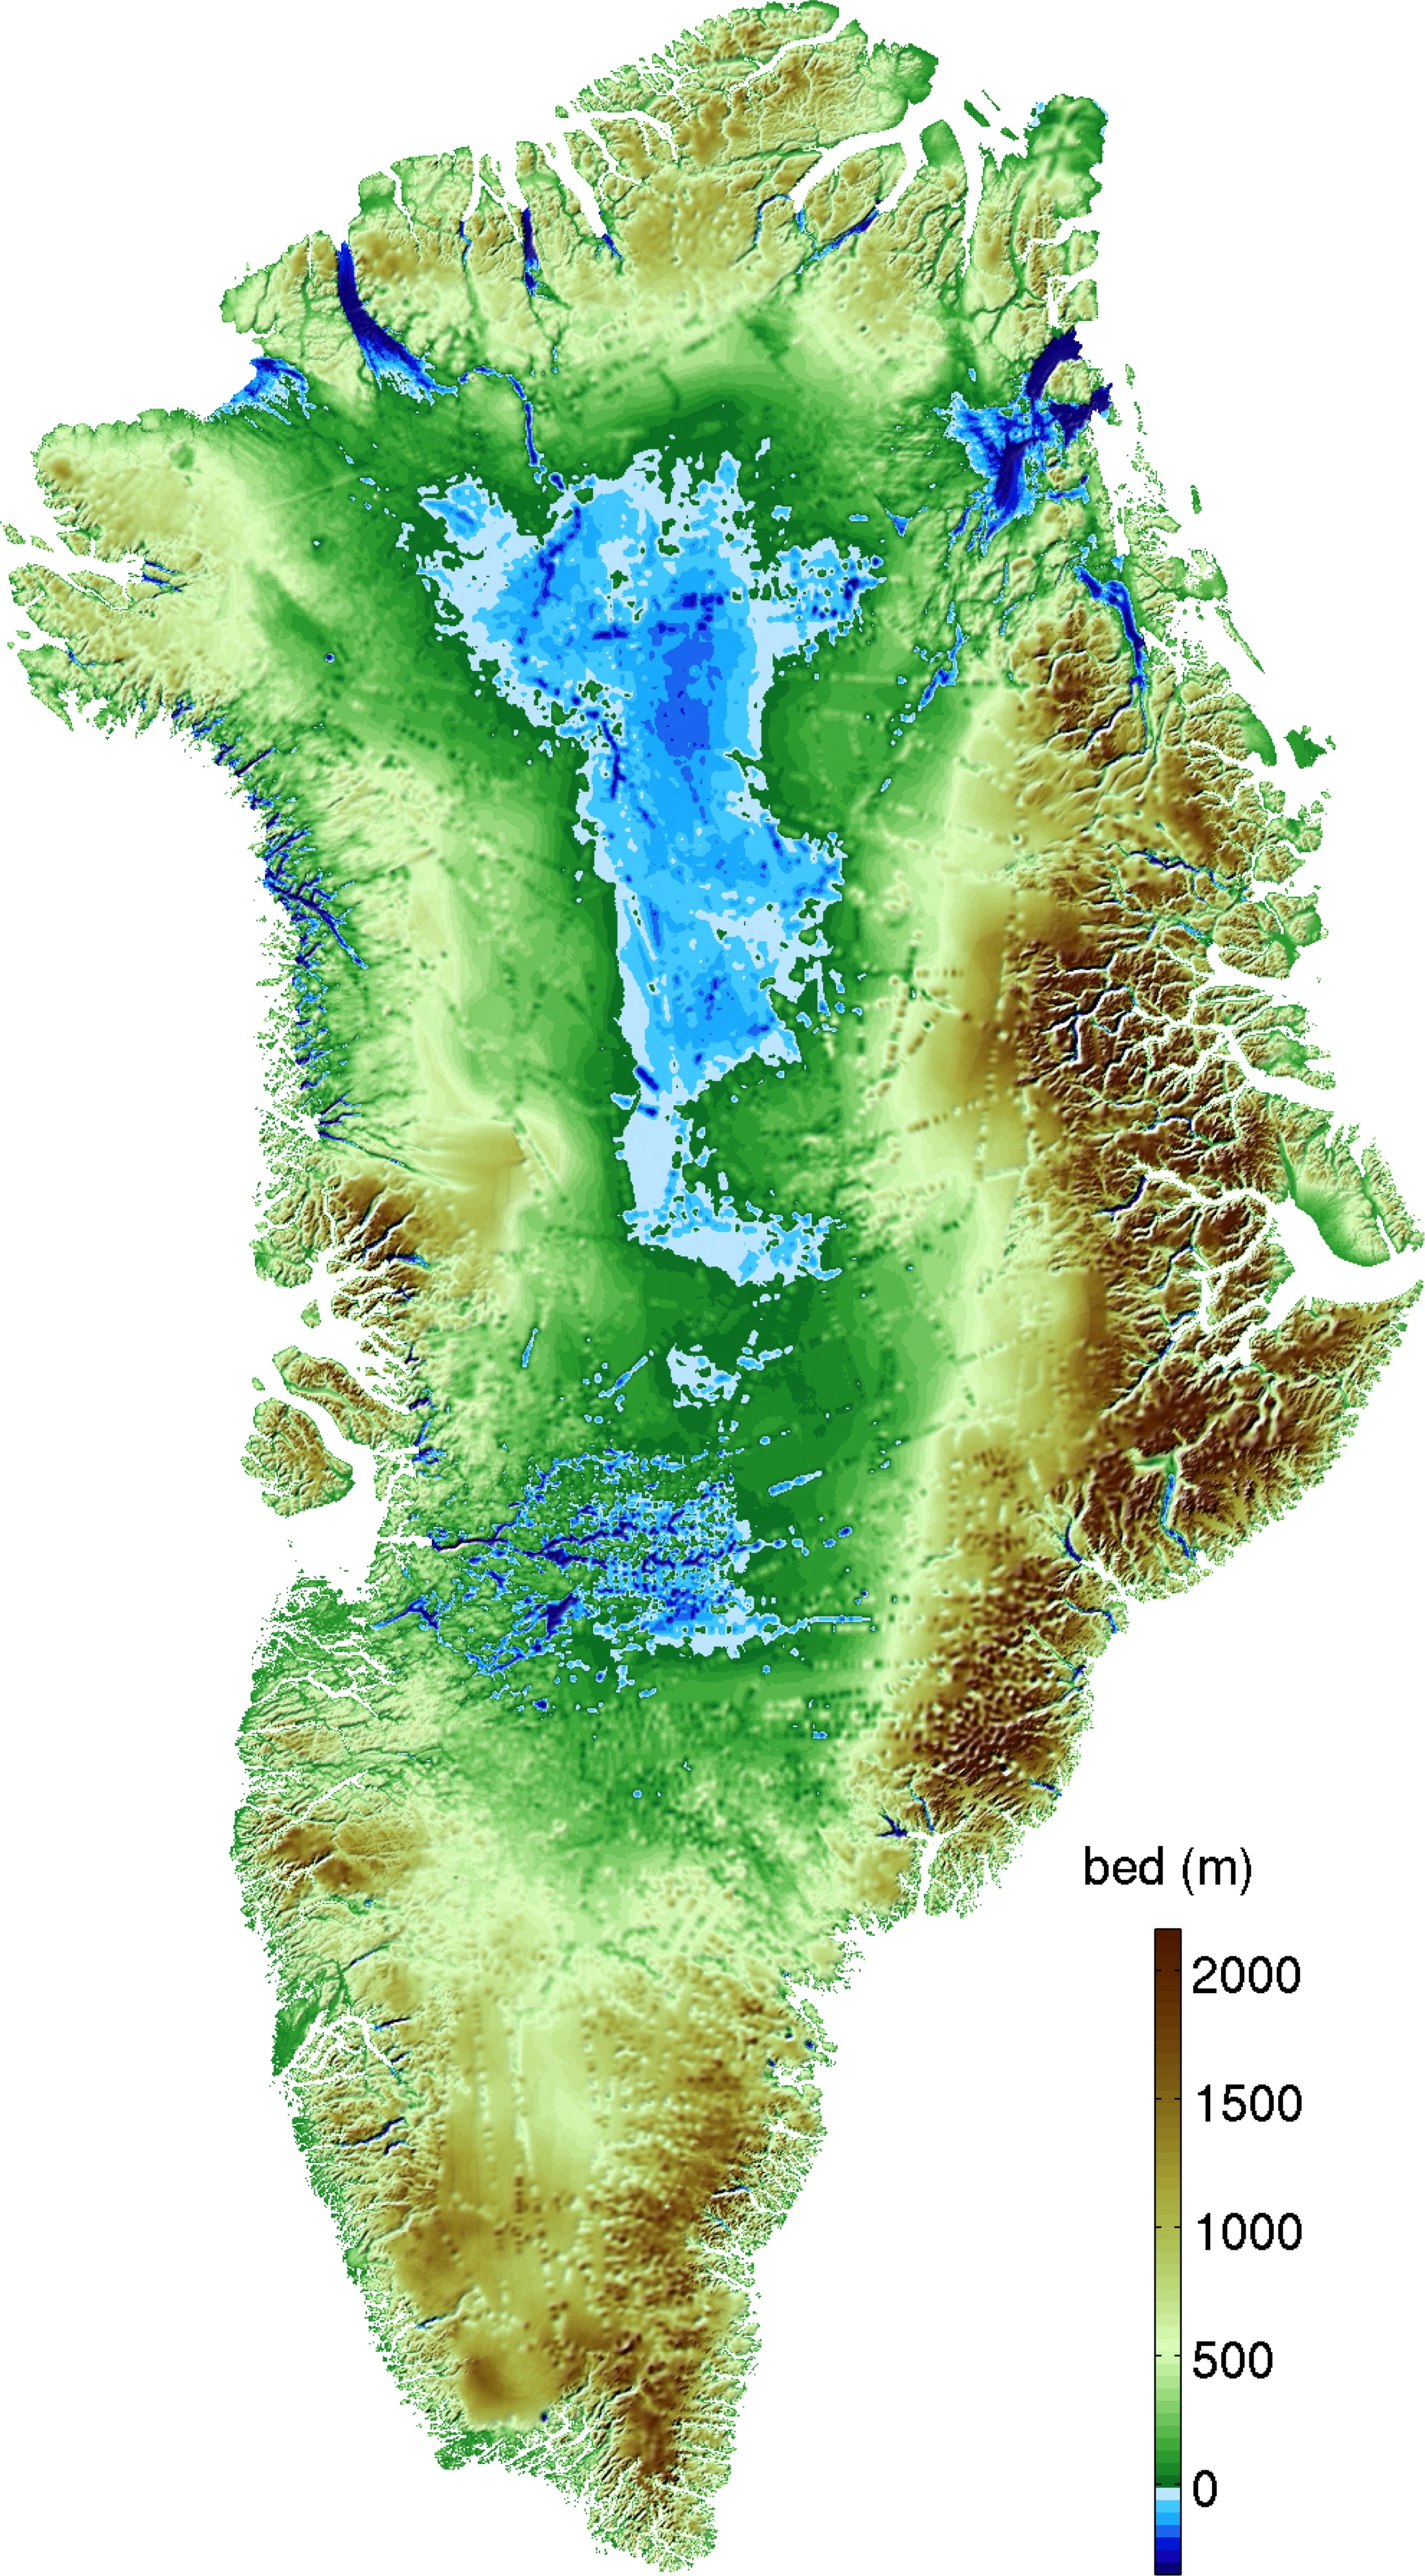 The new map of Greenland's topography. The straight lines visible in the interior of the continent are artifacts from aerial surveys that measured ice depth.